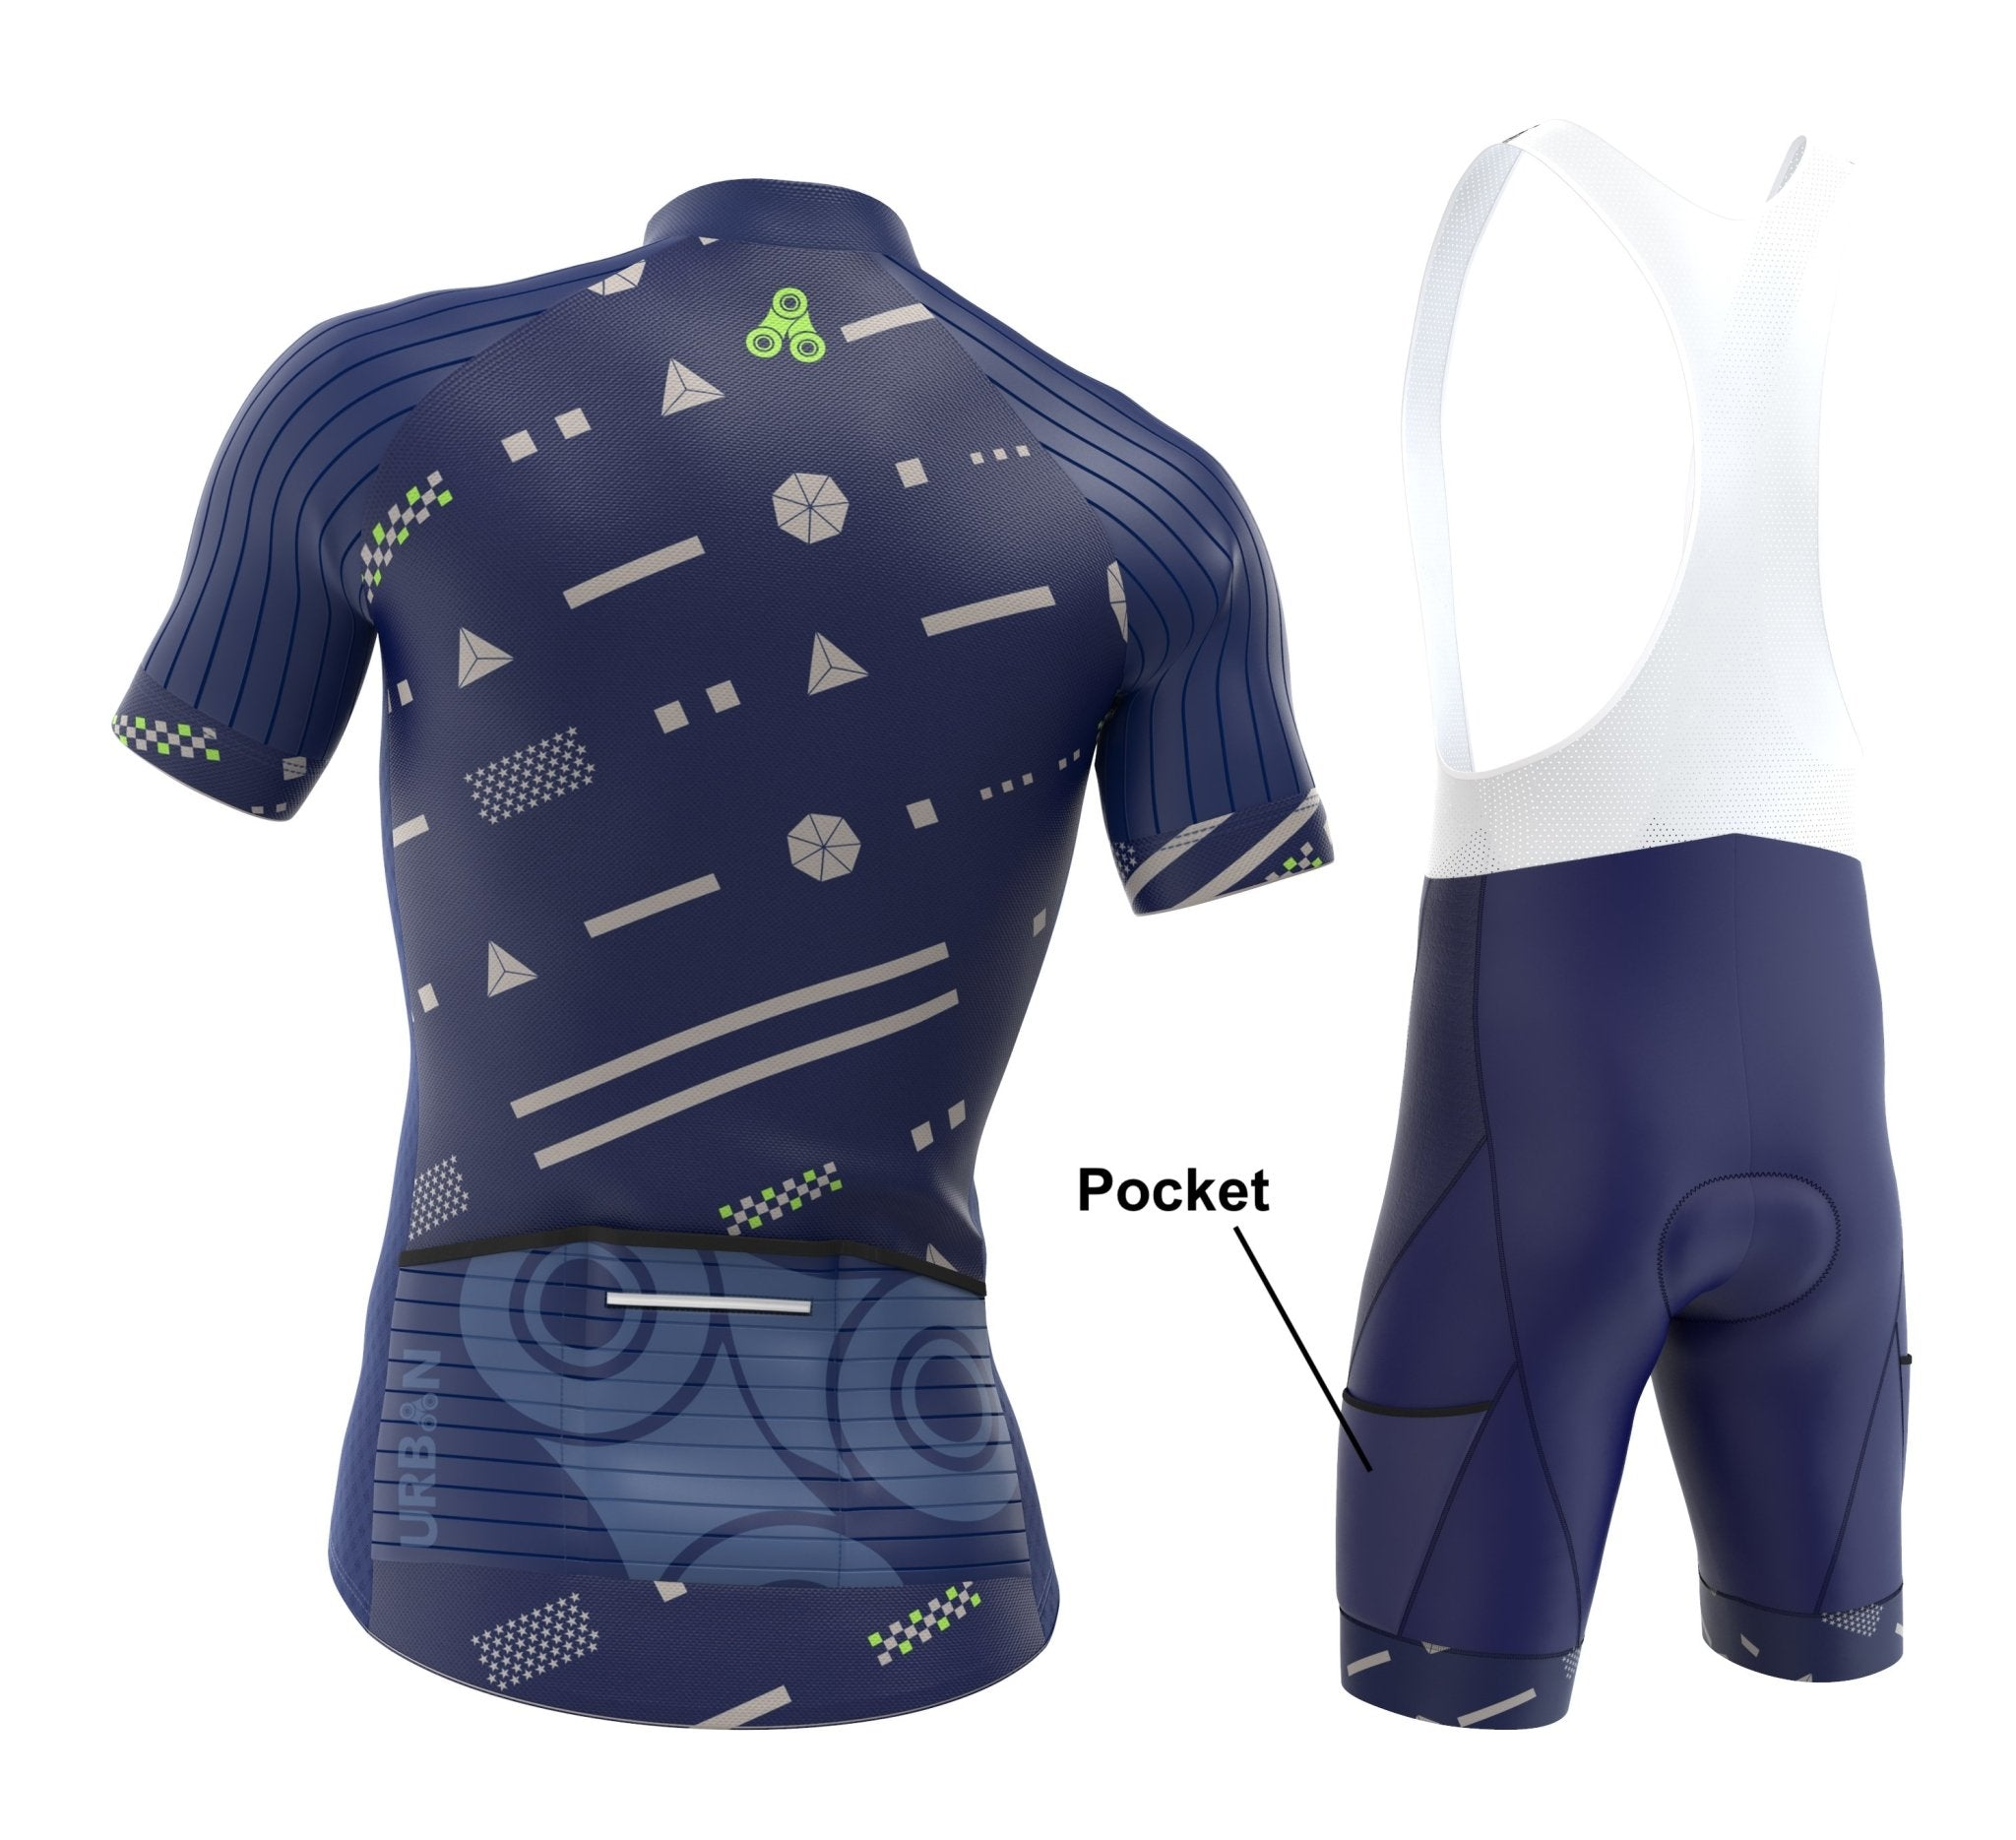 Men/'s Pro Urban Cycling Short Sleeve Jersey Cargo Bib Shorts or Kit Bundle